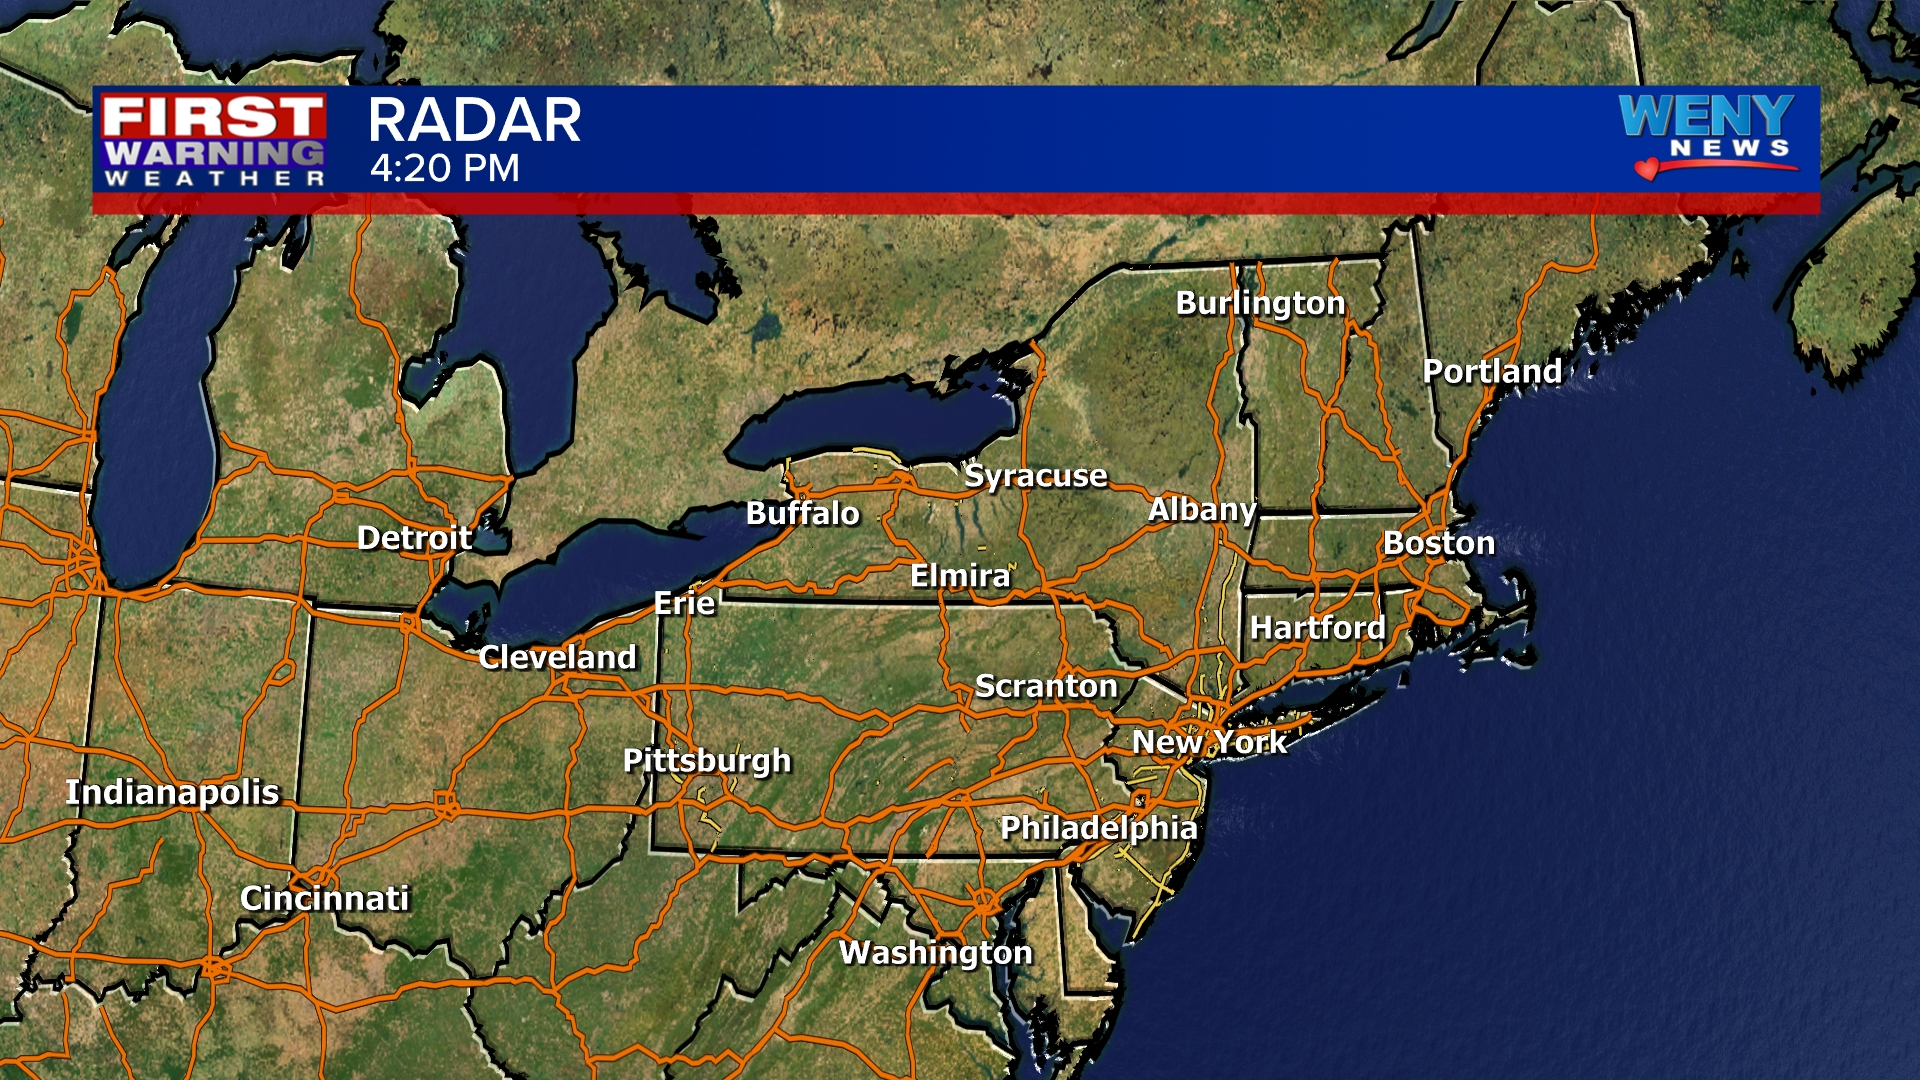 Us Radar Weather Map Online Maps Of USA GOLDEN TRIANGLE WEATHER - Weather in the us map